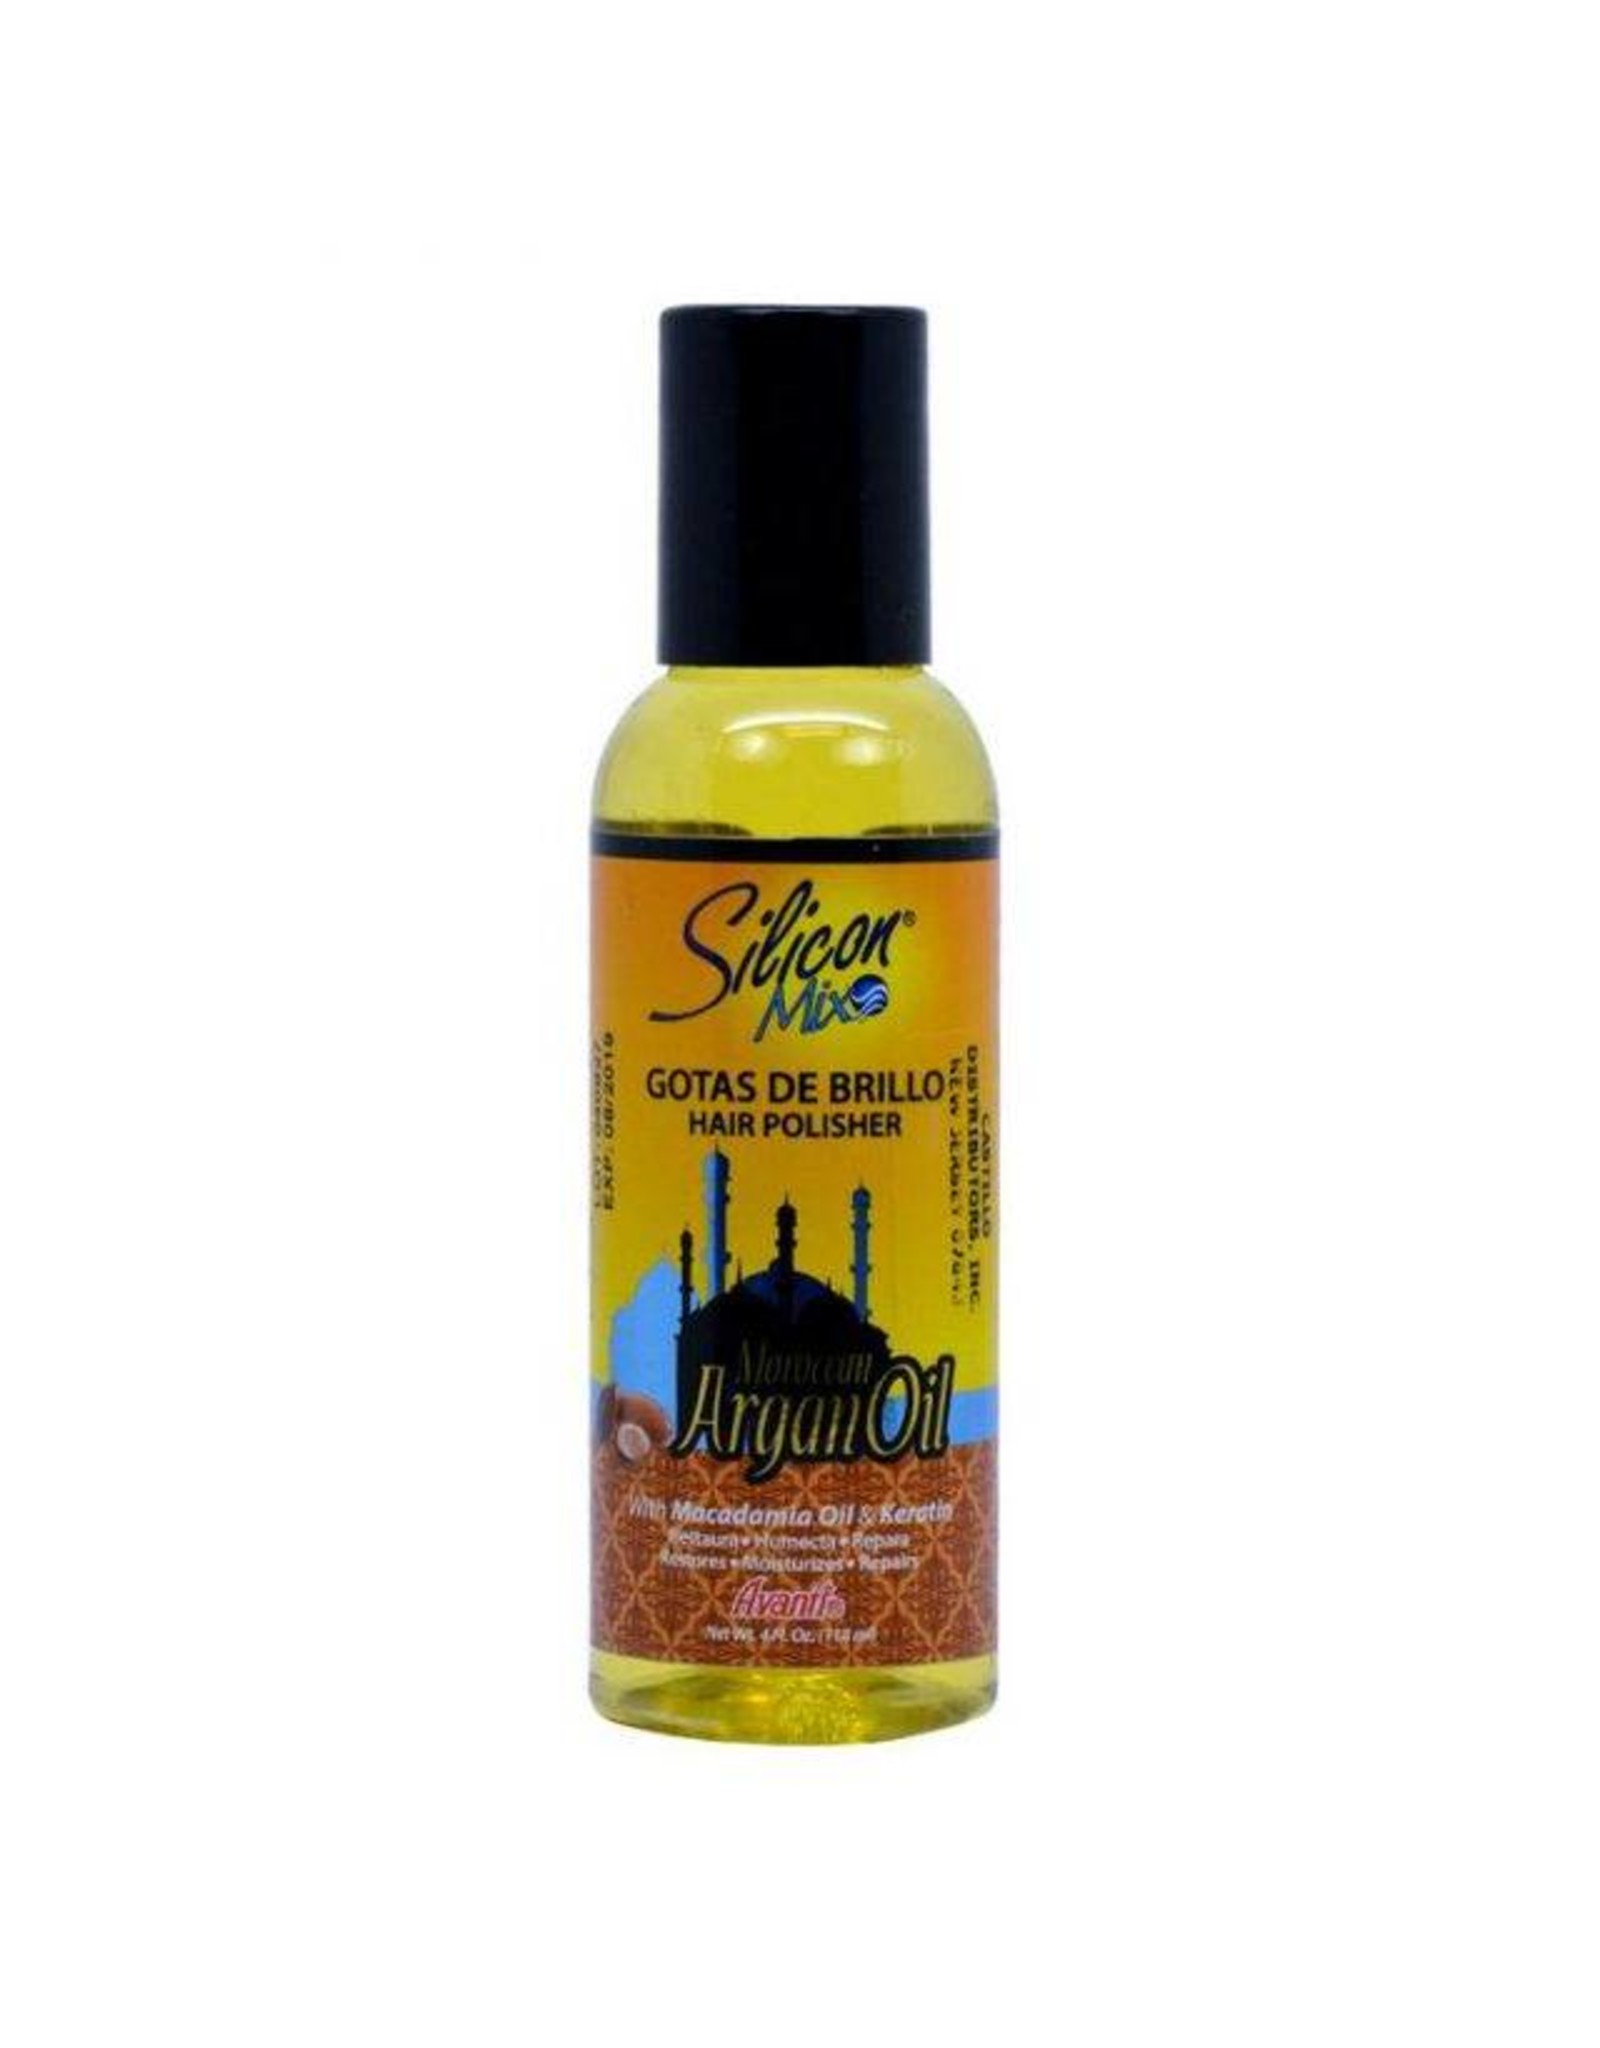 Silicon Mix Argan Oil Hair Polisher